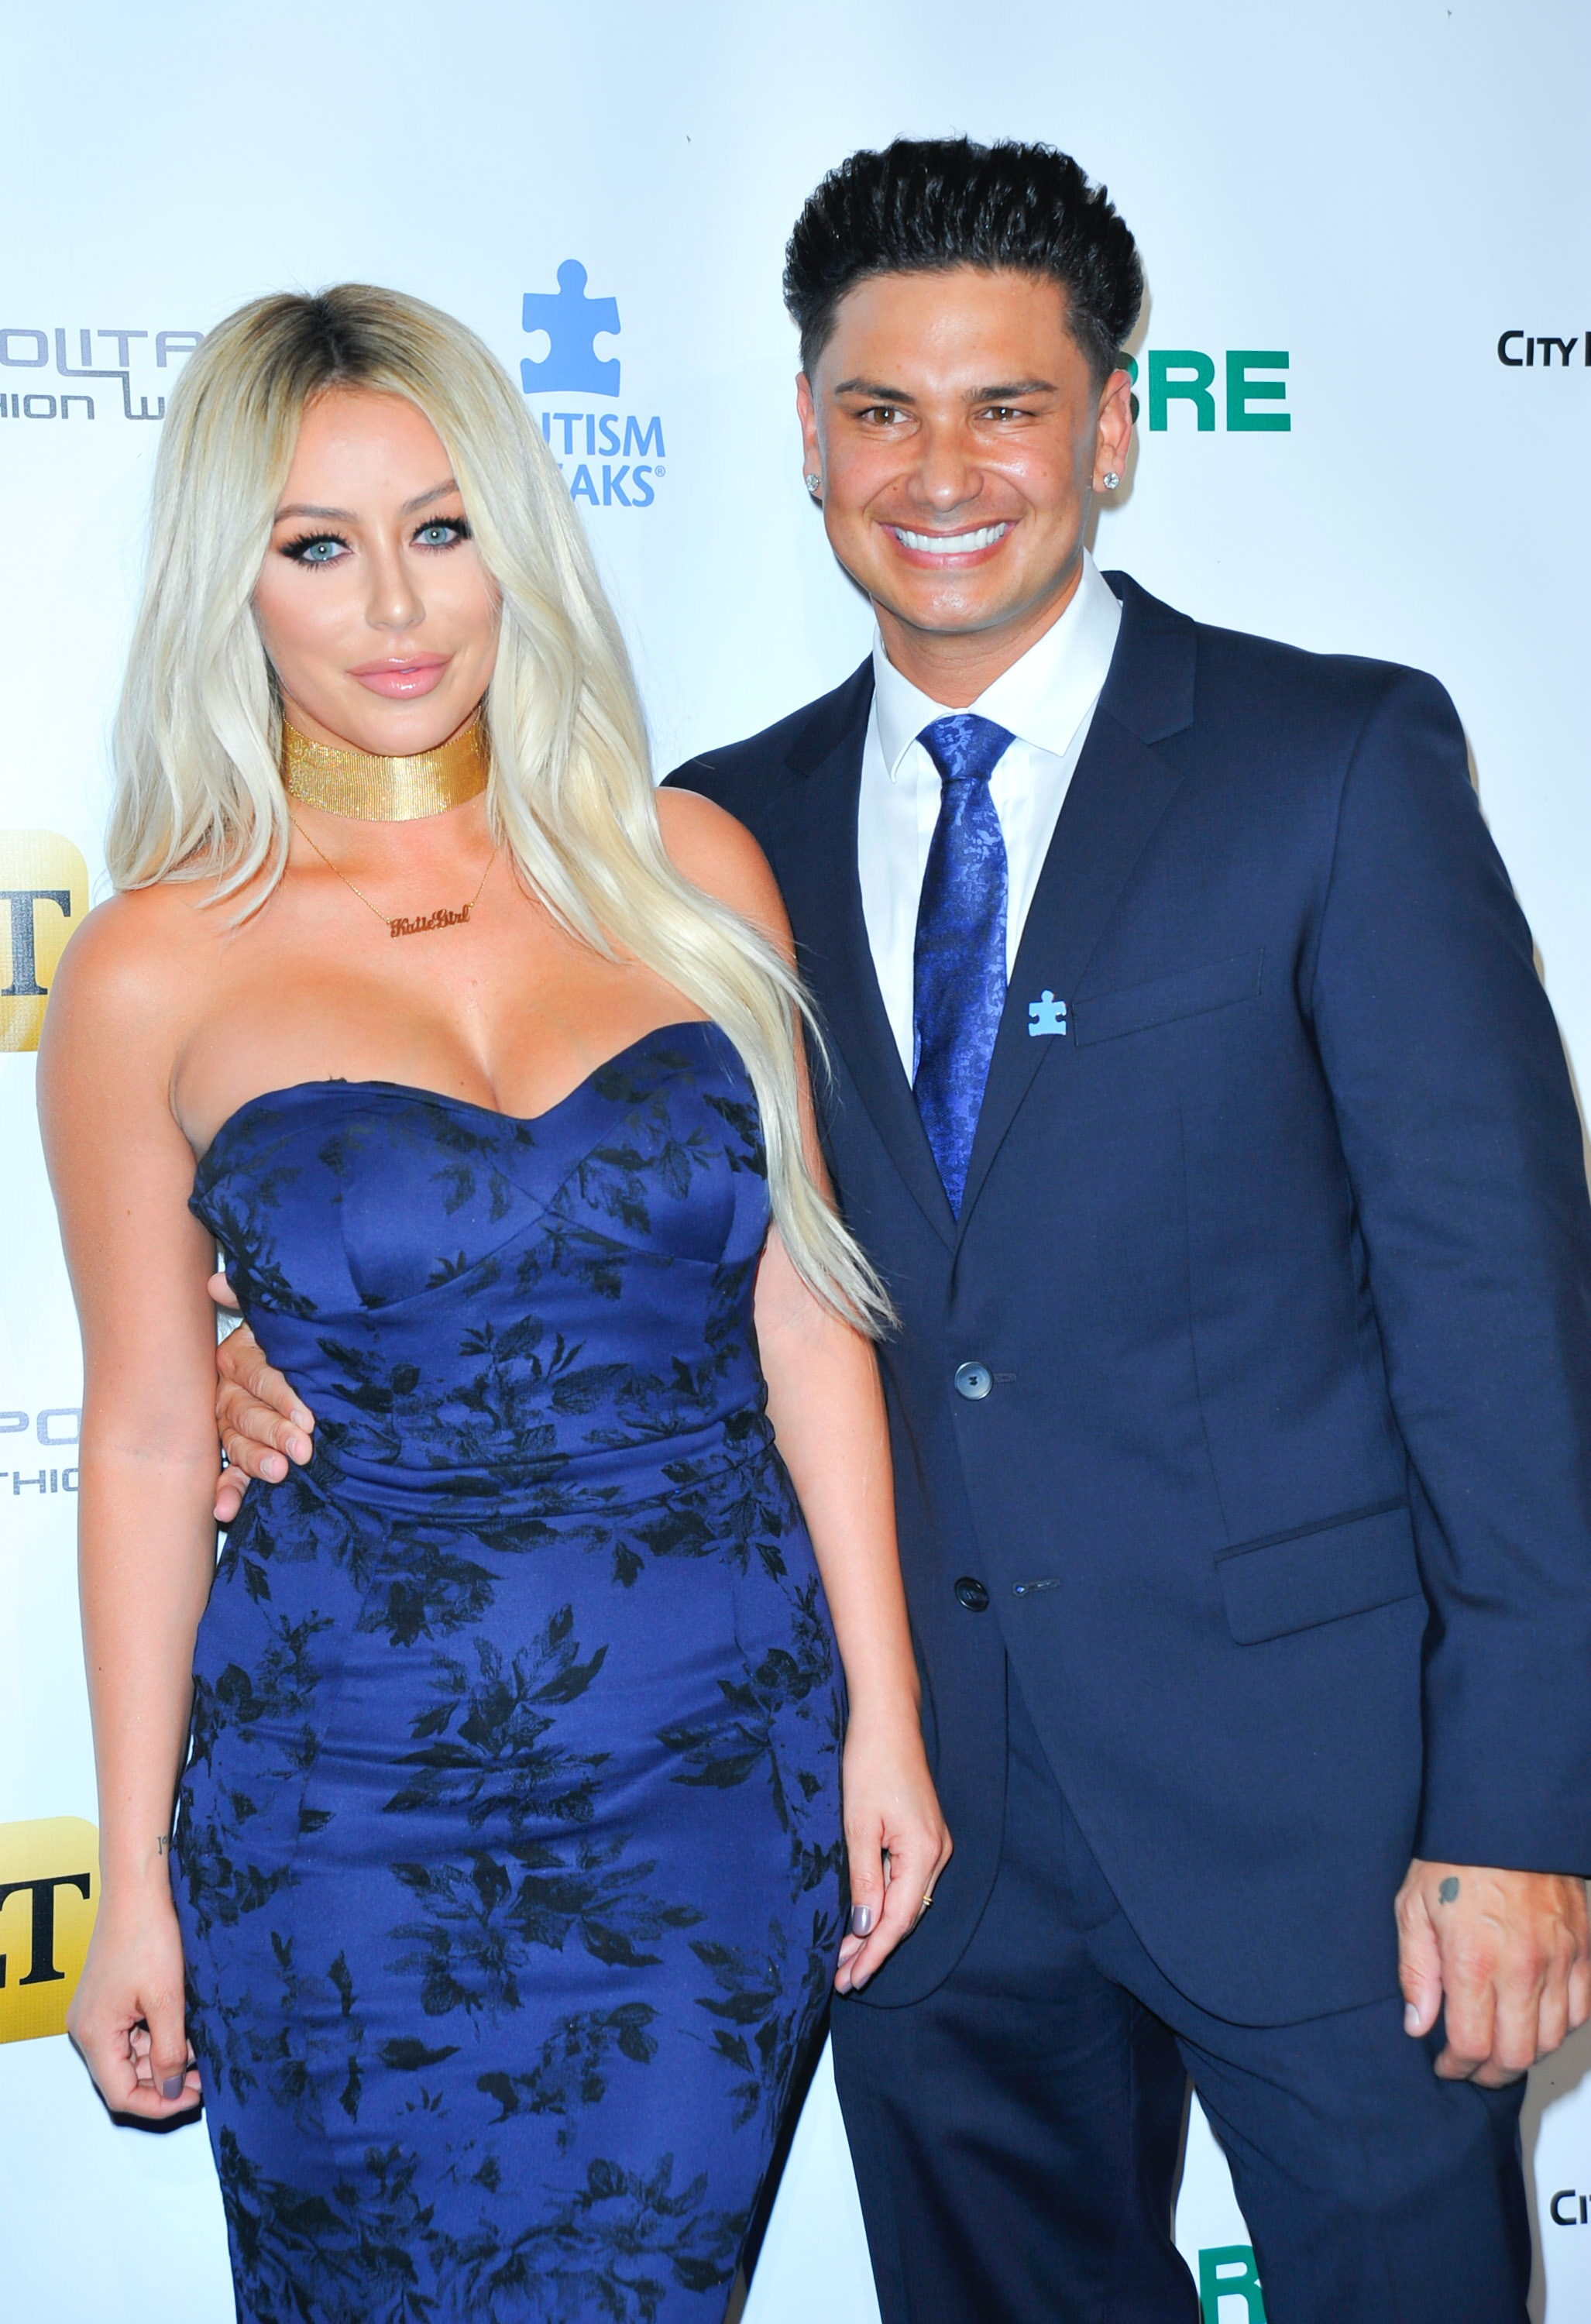 who is pauly d currently dating